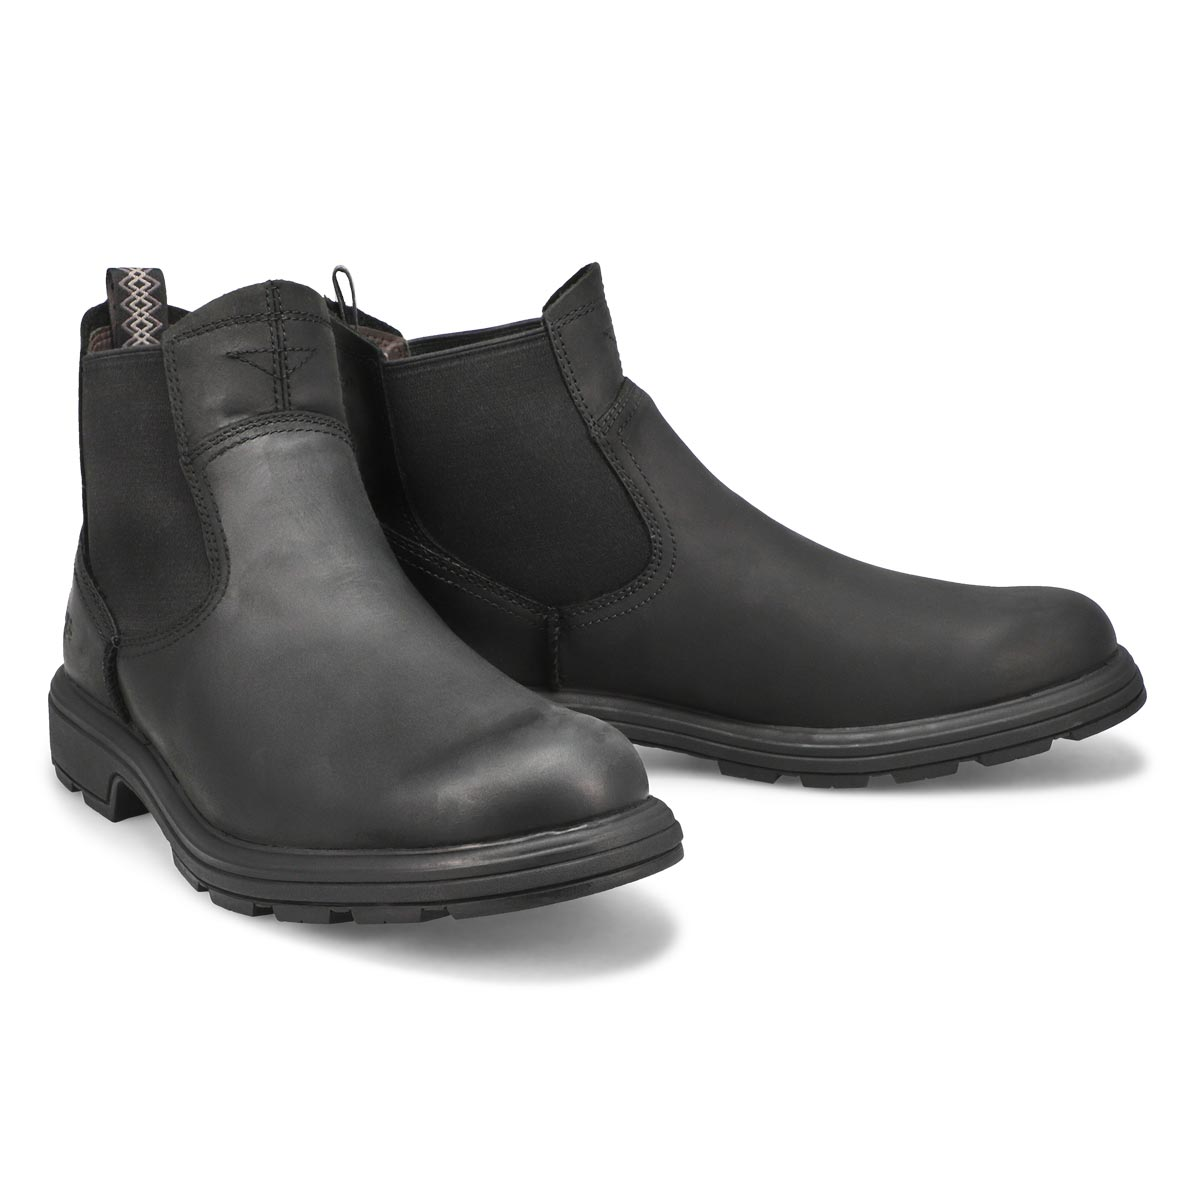 Men's Biltmore Waterproof Chelsea Boot - Black